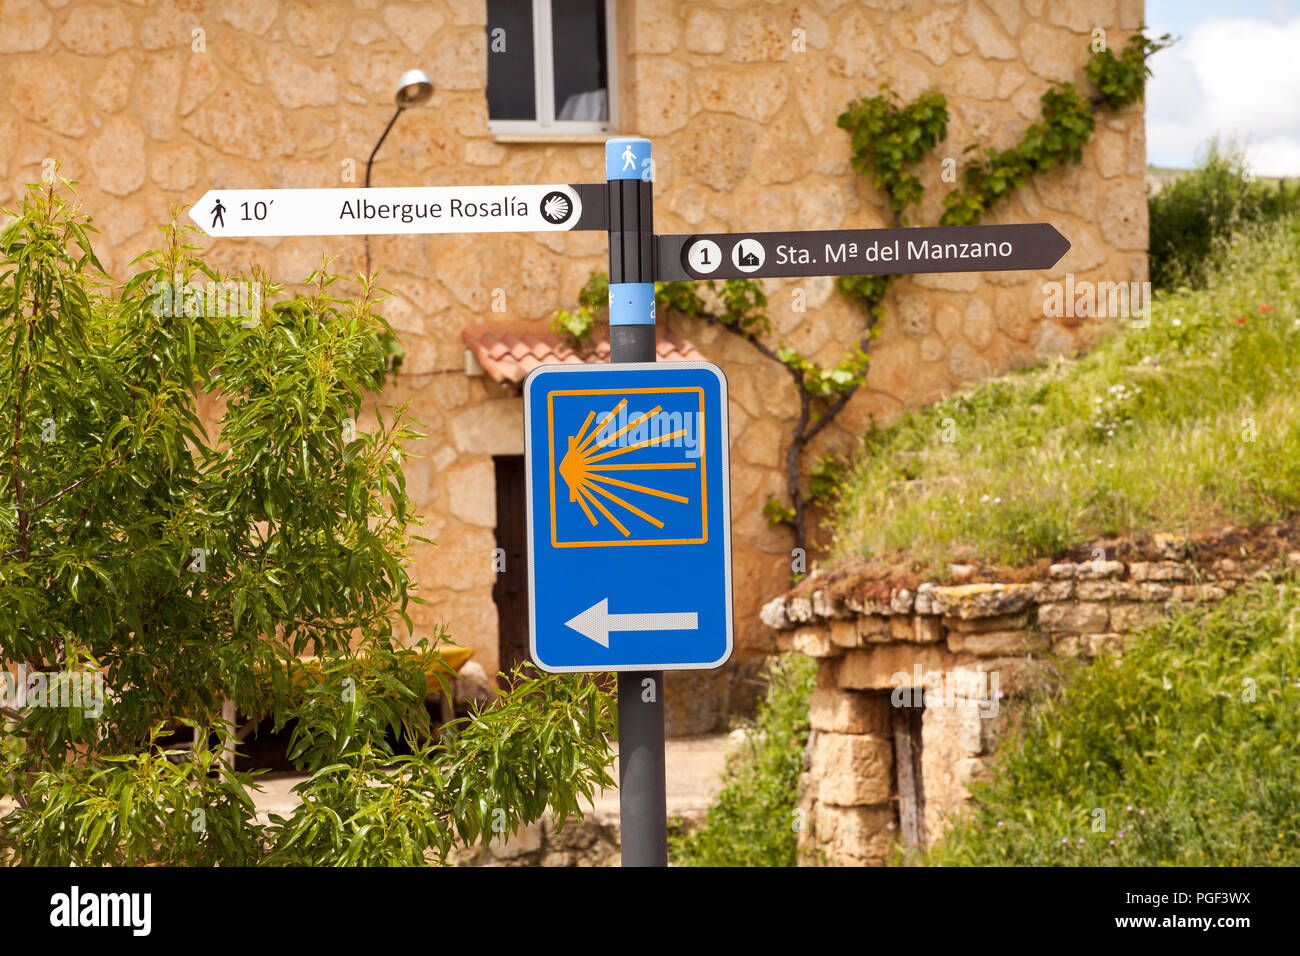 Way marker direction signpost on the Camino de Santiago the way of St James pilgrimage route in the town of Castrojeriz Burgos Spain Stock Photo